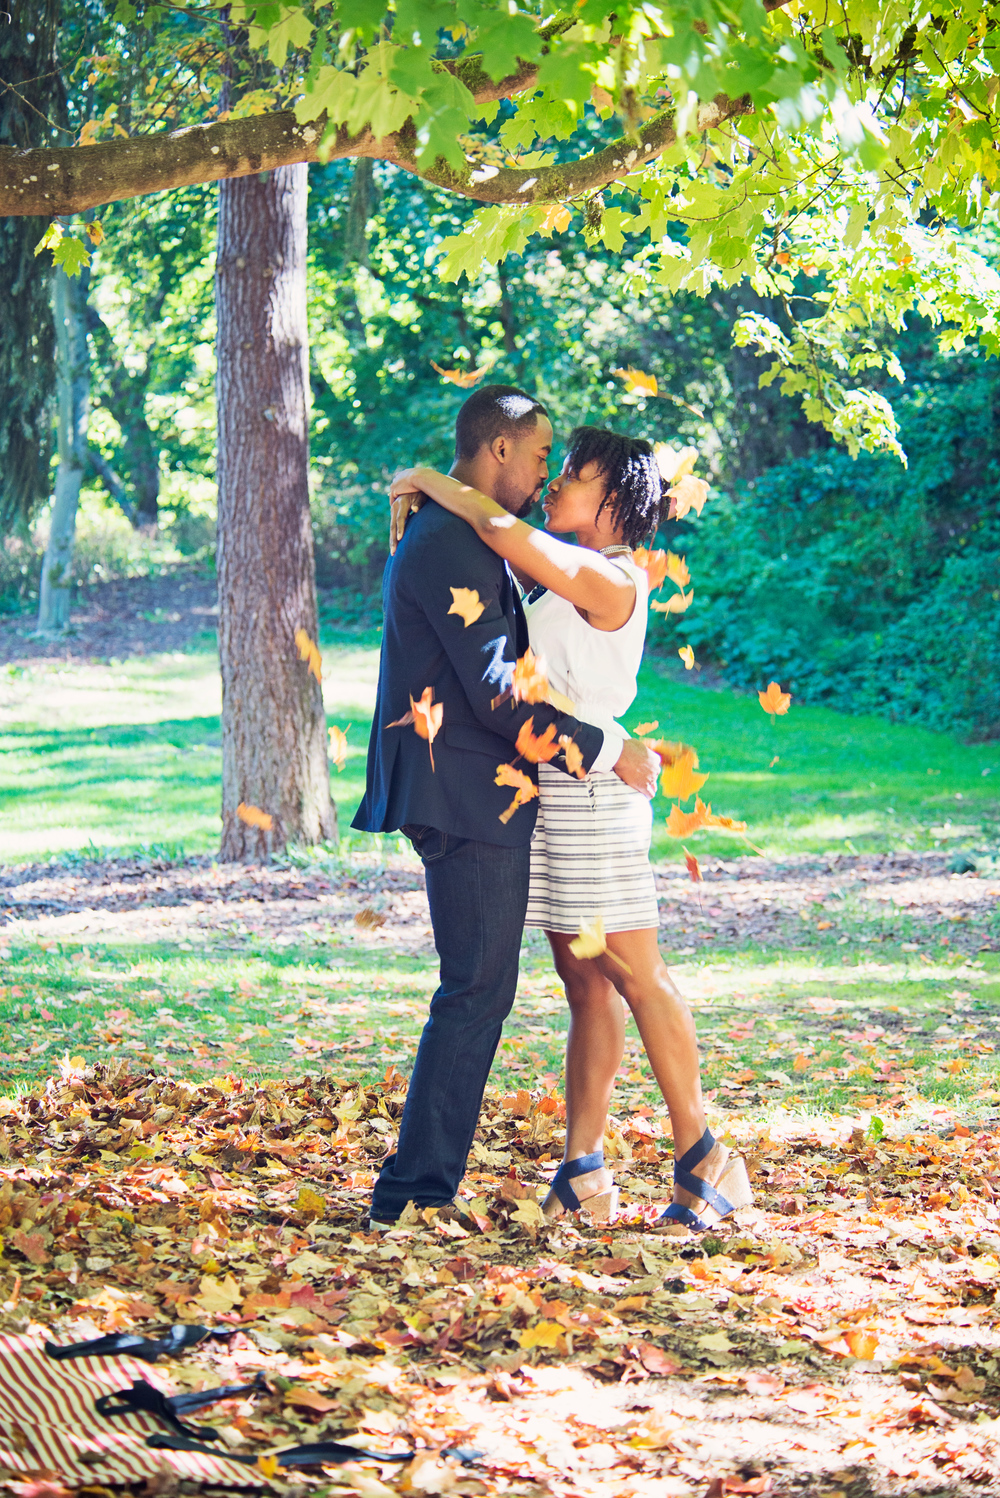 Seattle wedding photographer, engagement, fall, autumn, cute, leaves, Abie 19